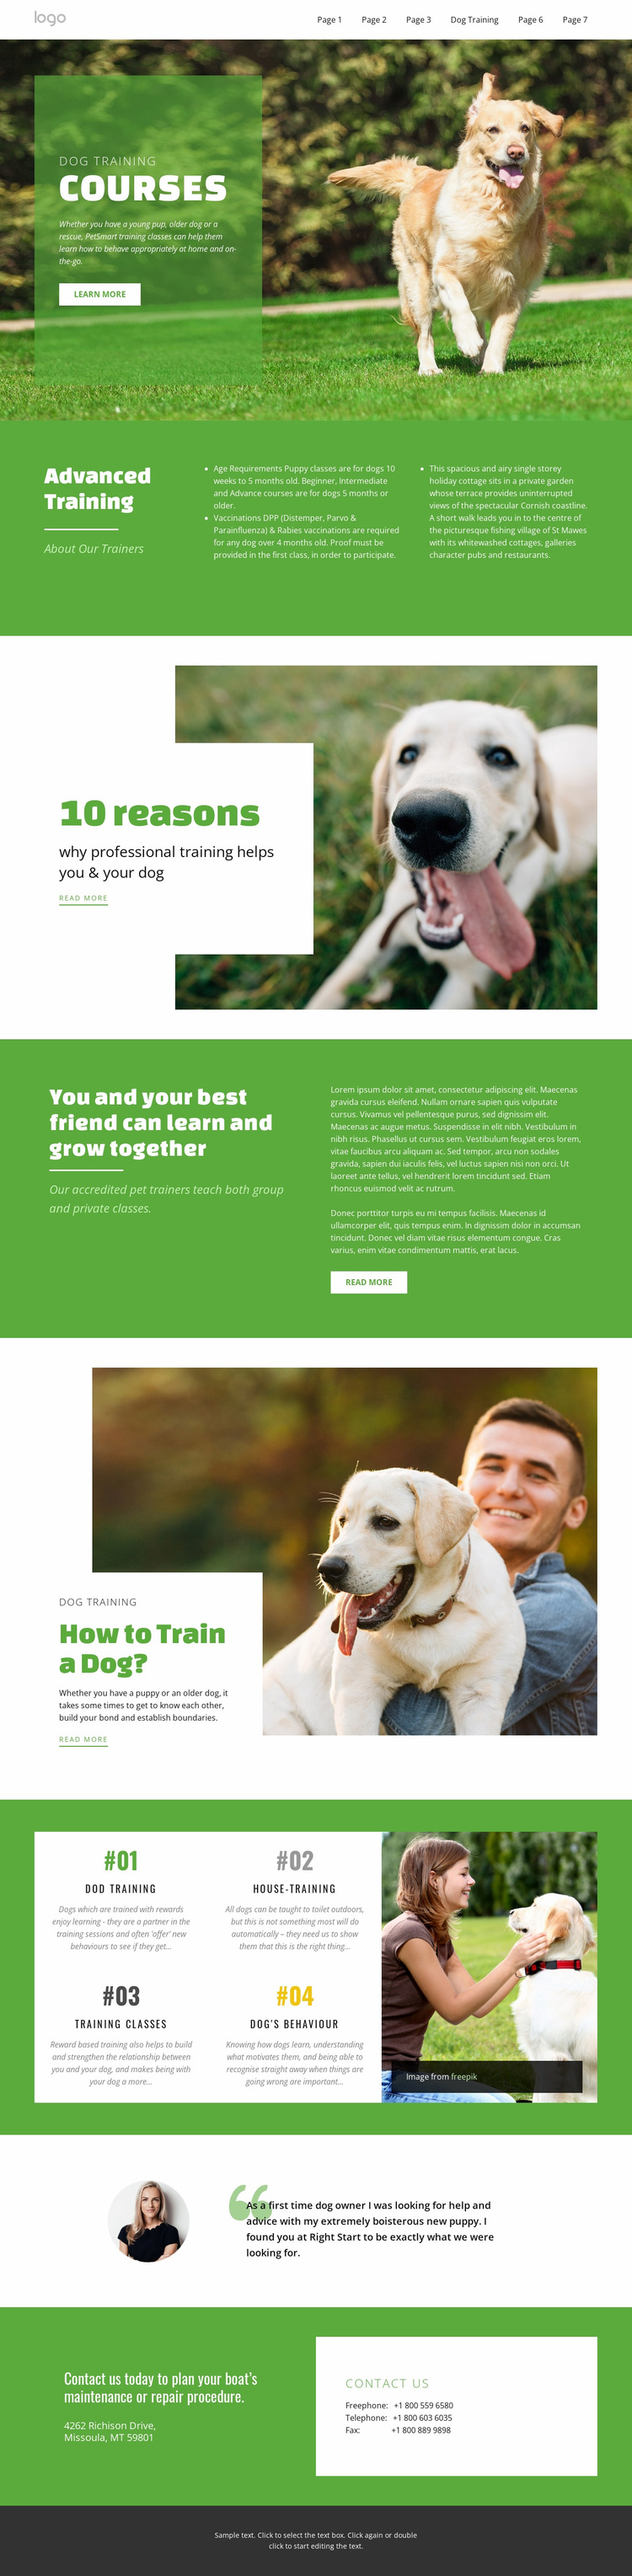 Training courses for pets Landing Page